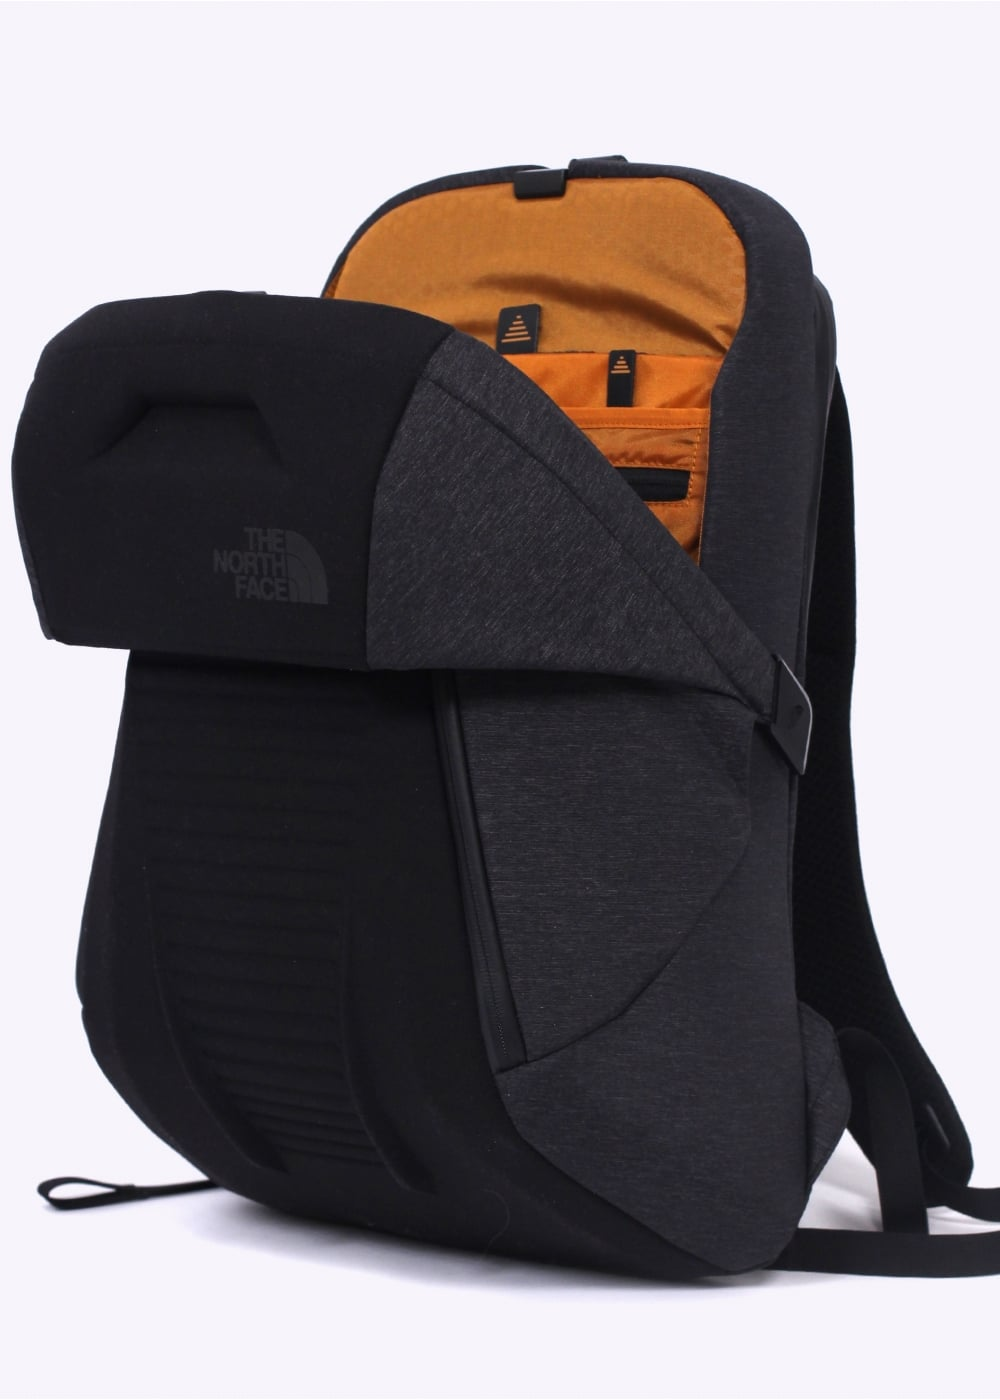 heet product superieure kwaliteit 2018 schoenen The North Face Access Backpack- Fenix Toulouse Handball